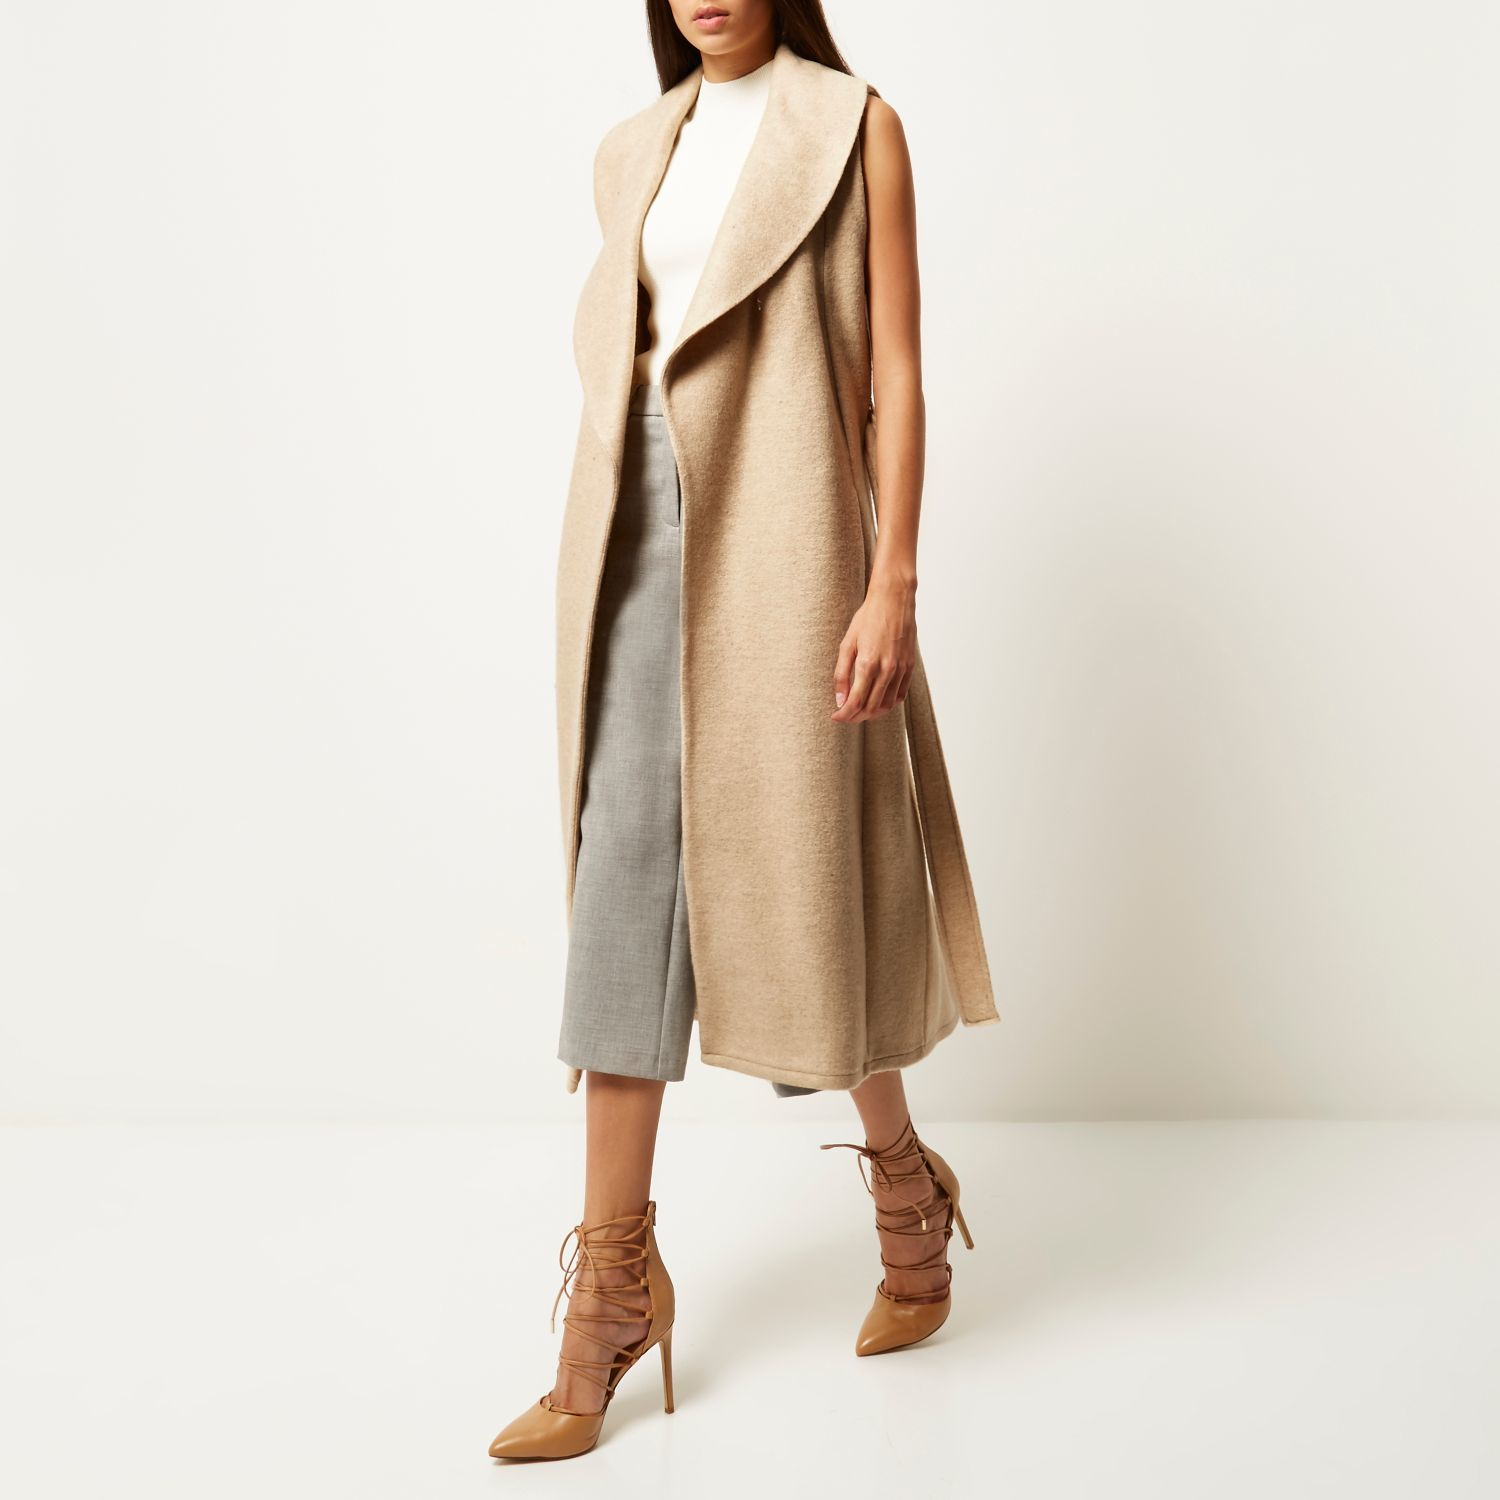 c525933fd9eea River Island Cream Jersey Belted Sleeveless Coat in Natural - Lyst